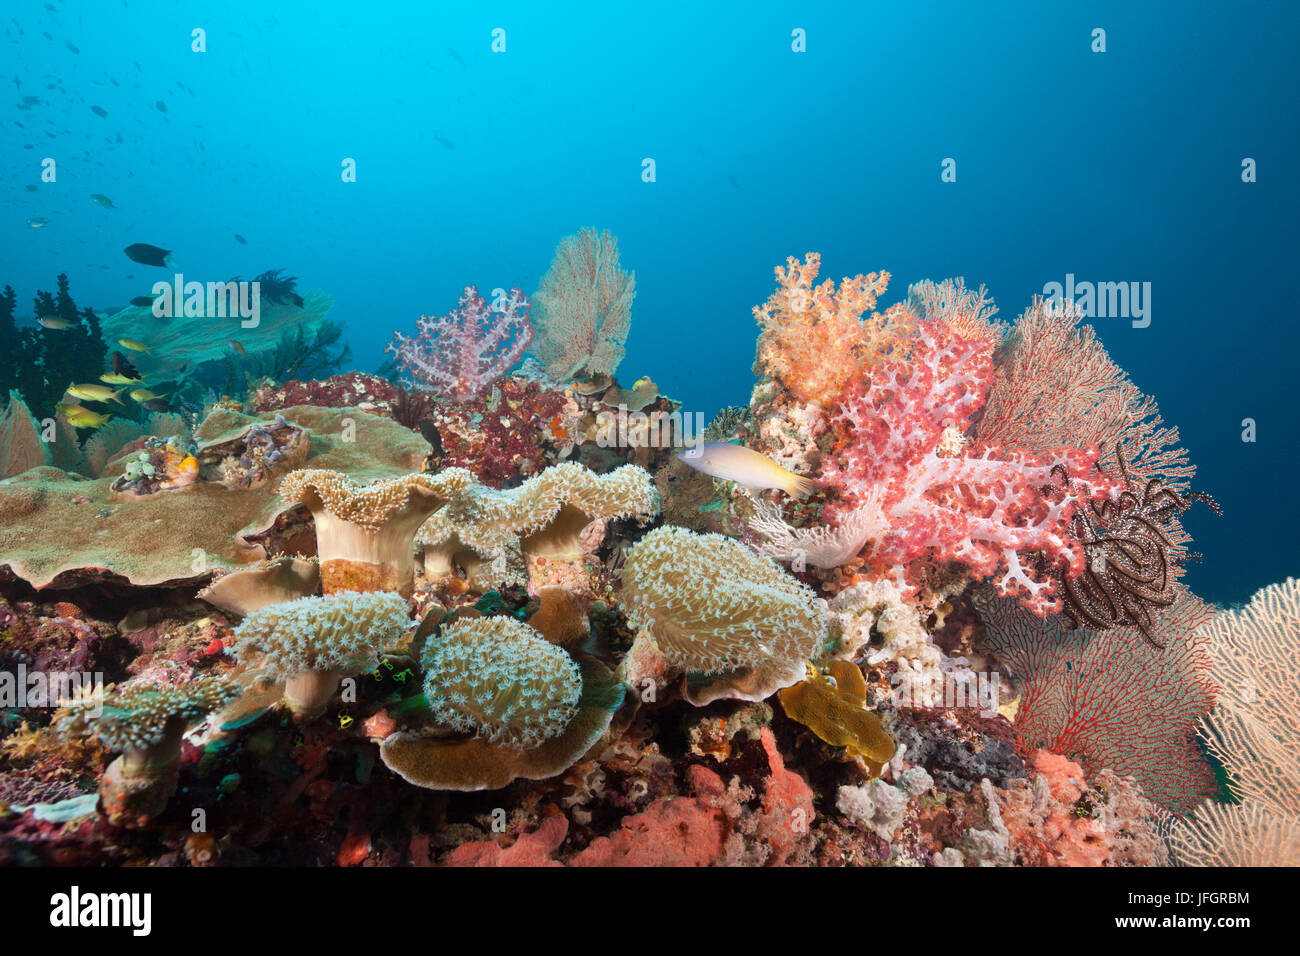 Very varied coral reef, Florida Islands, the Solomon Islands - Stock Image